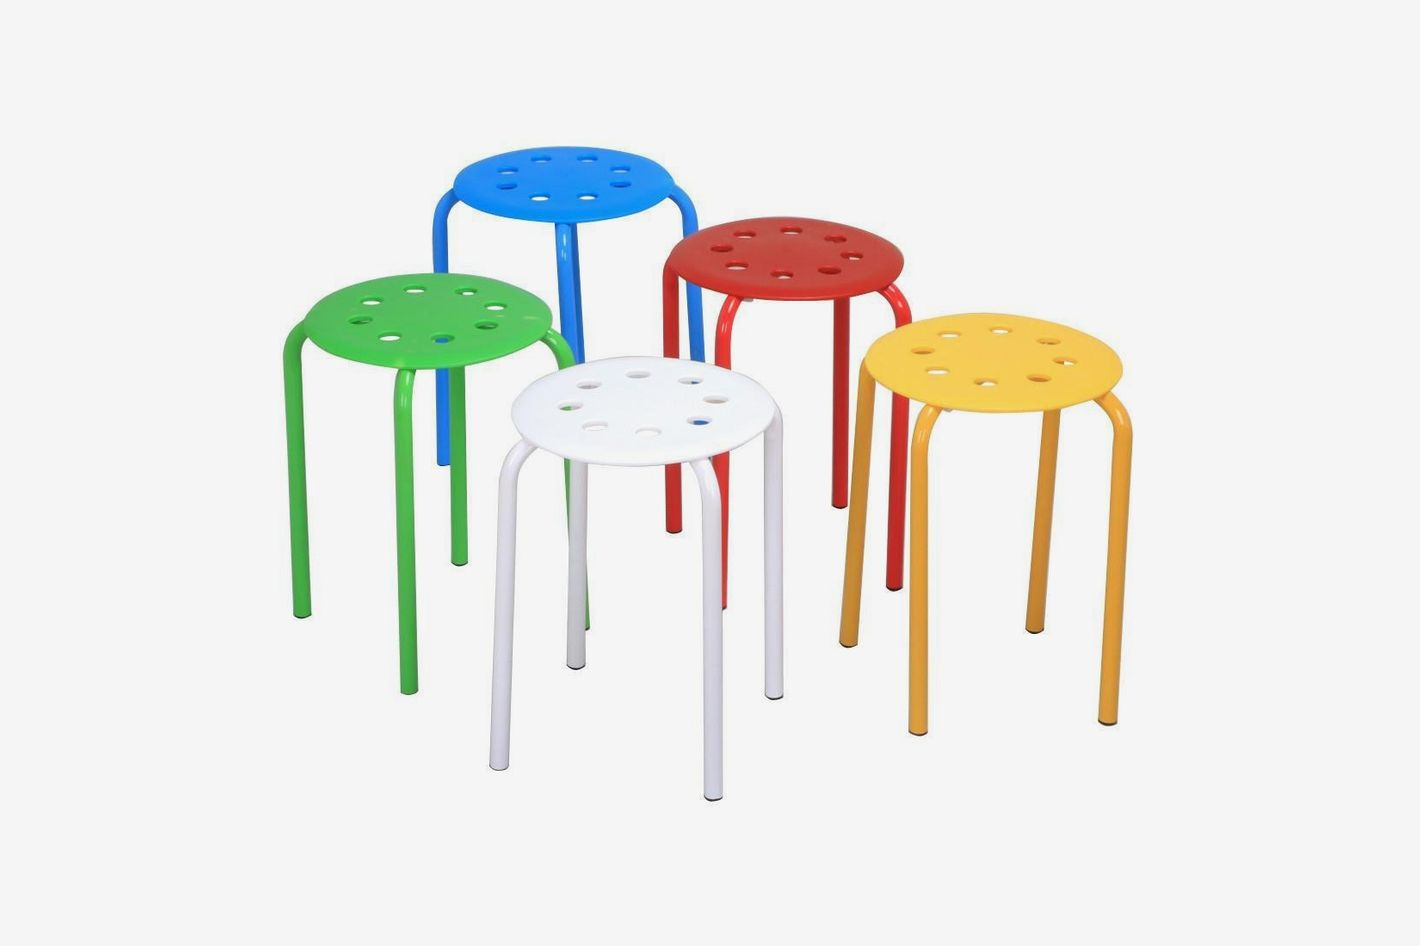 "Topeakmart 17.3"" Tall Nesting Plastic Stack Stools Blue/Green/Red/White/Yellow (Set of 5, Multicolored)"